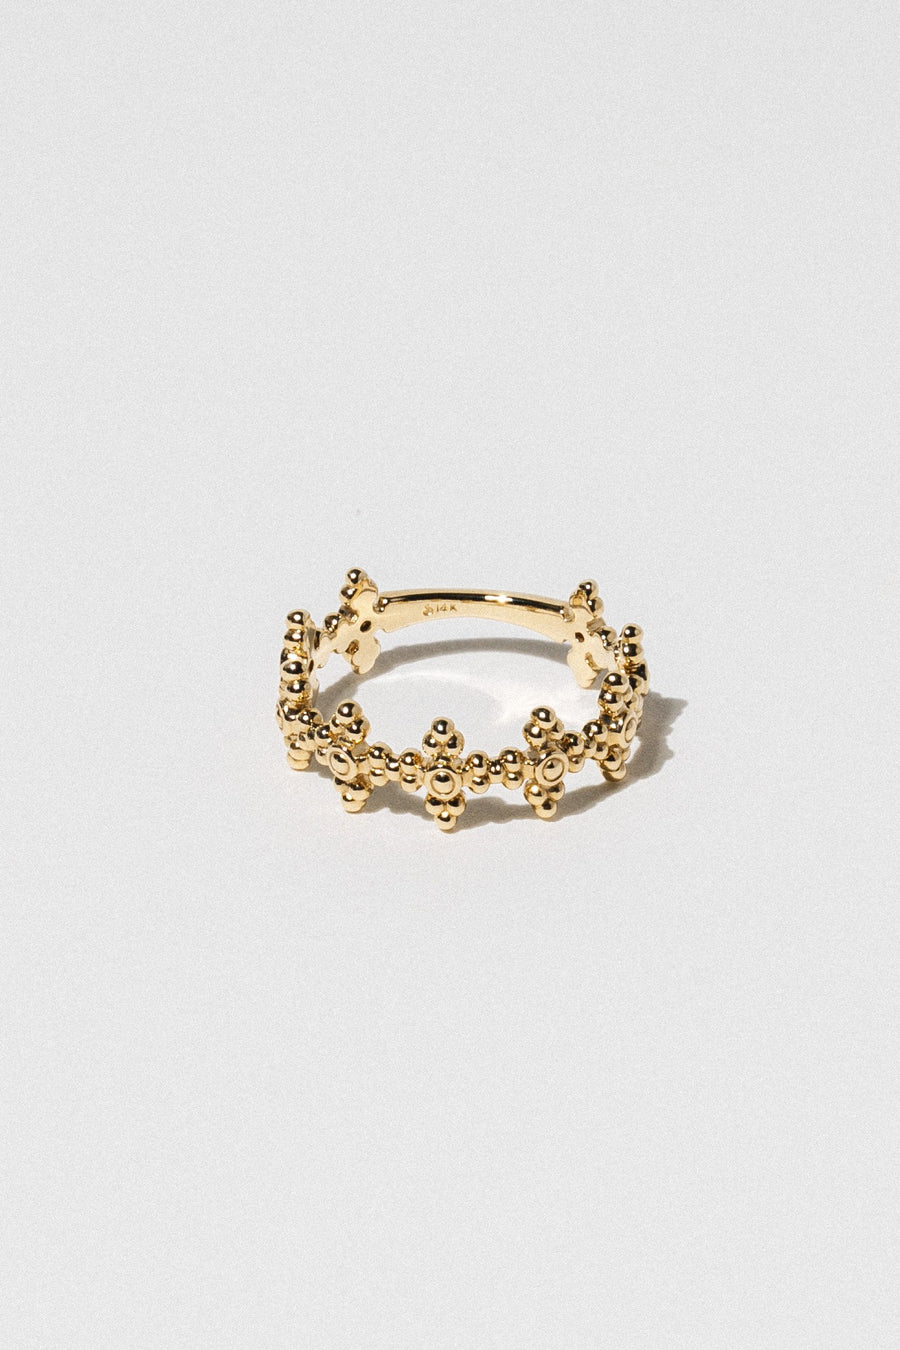 Stuller Jewelry Gold / US 7 Angelico Ring